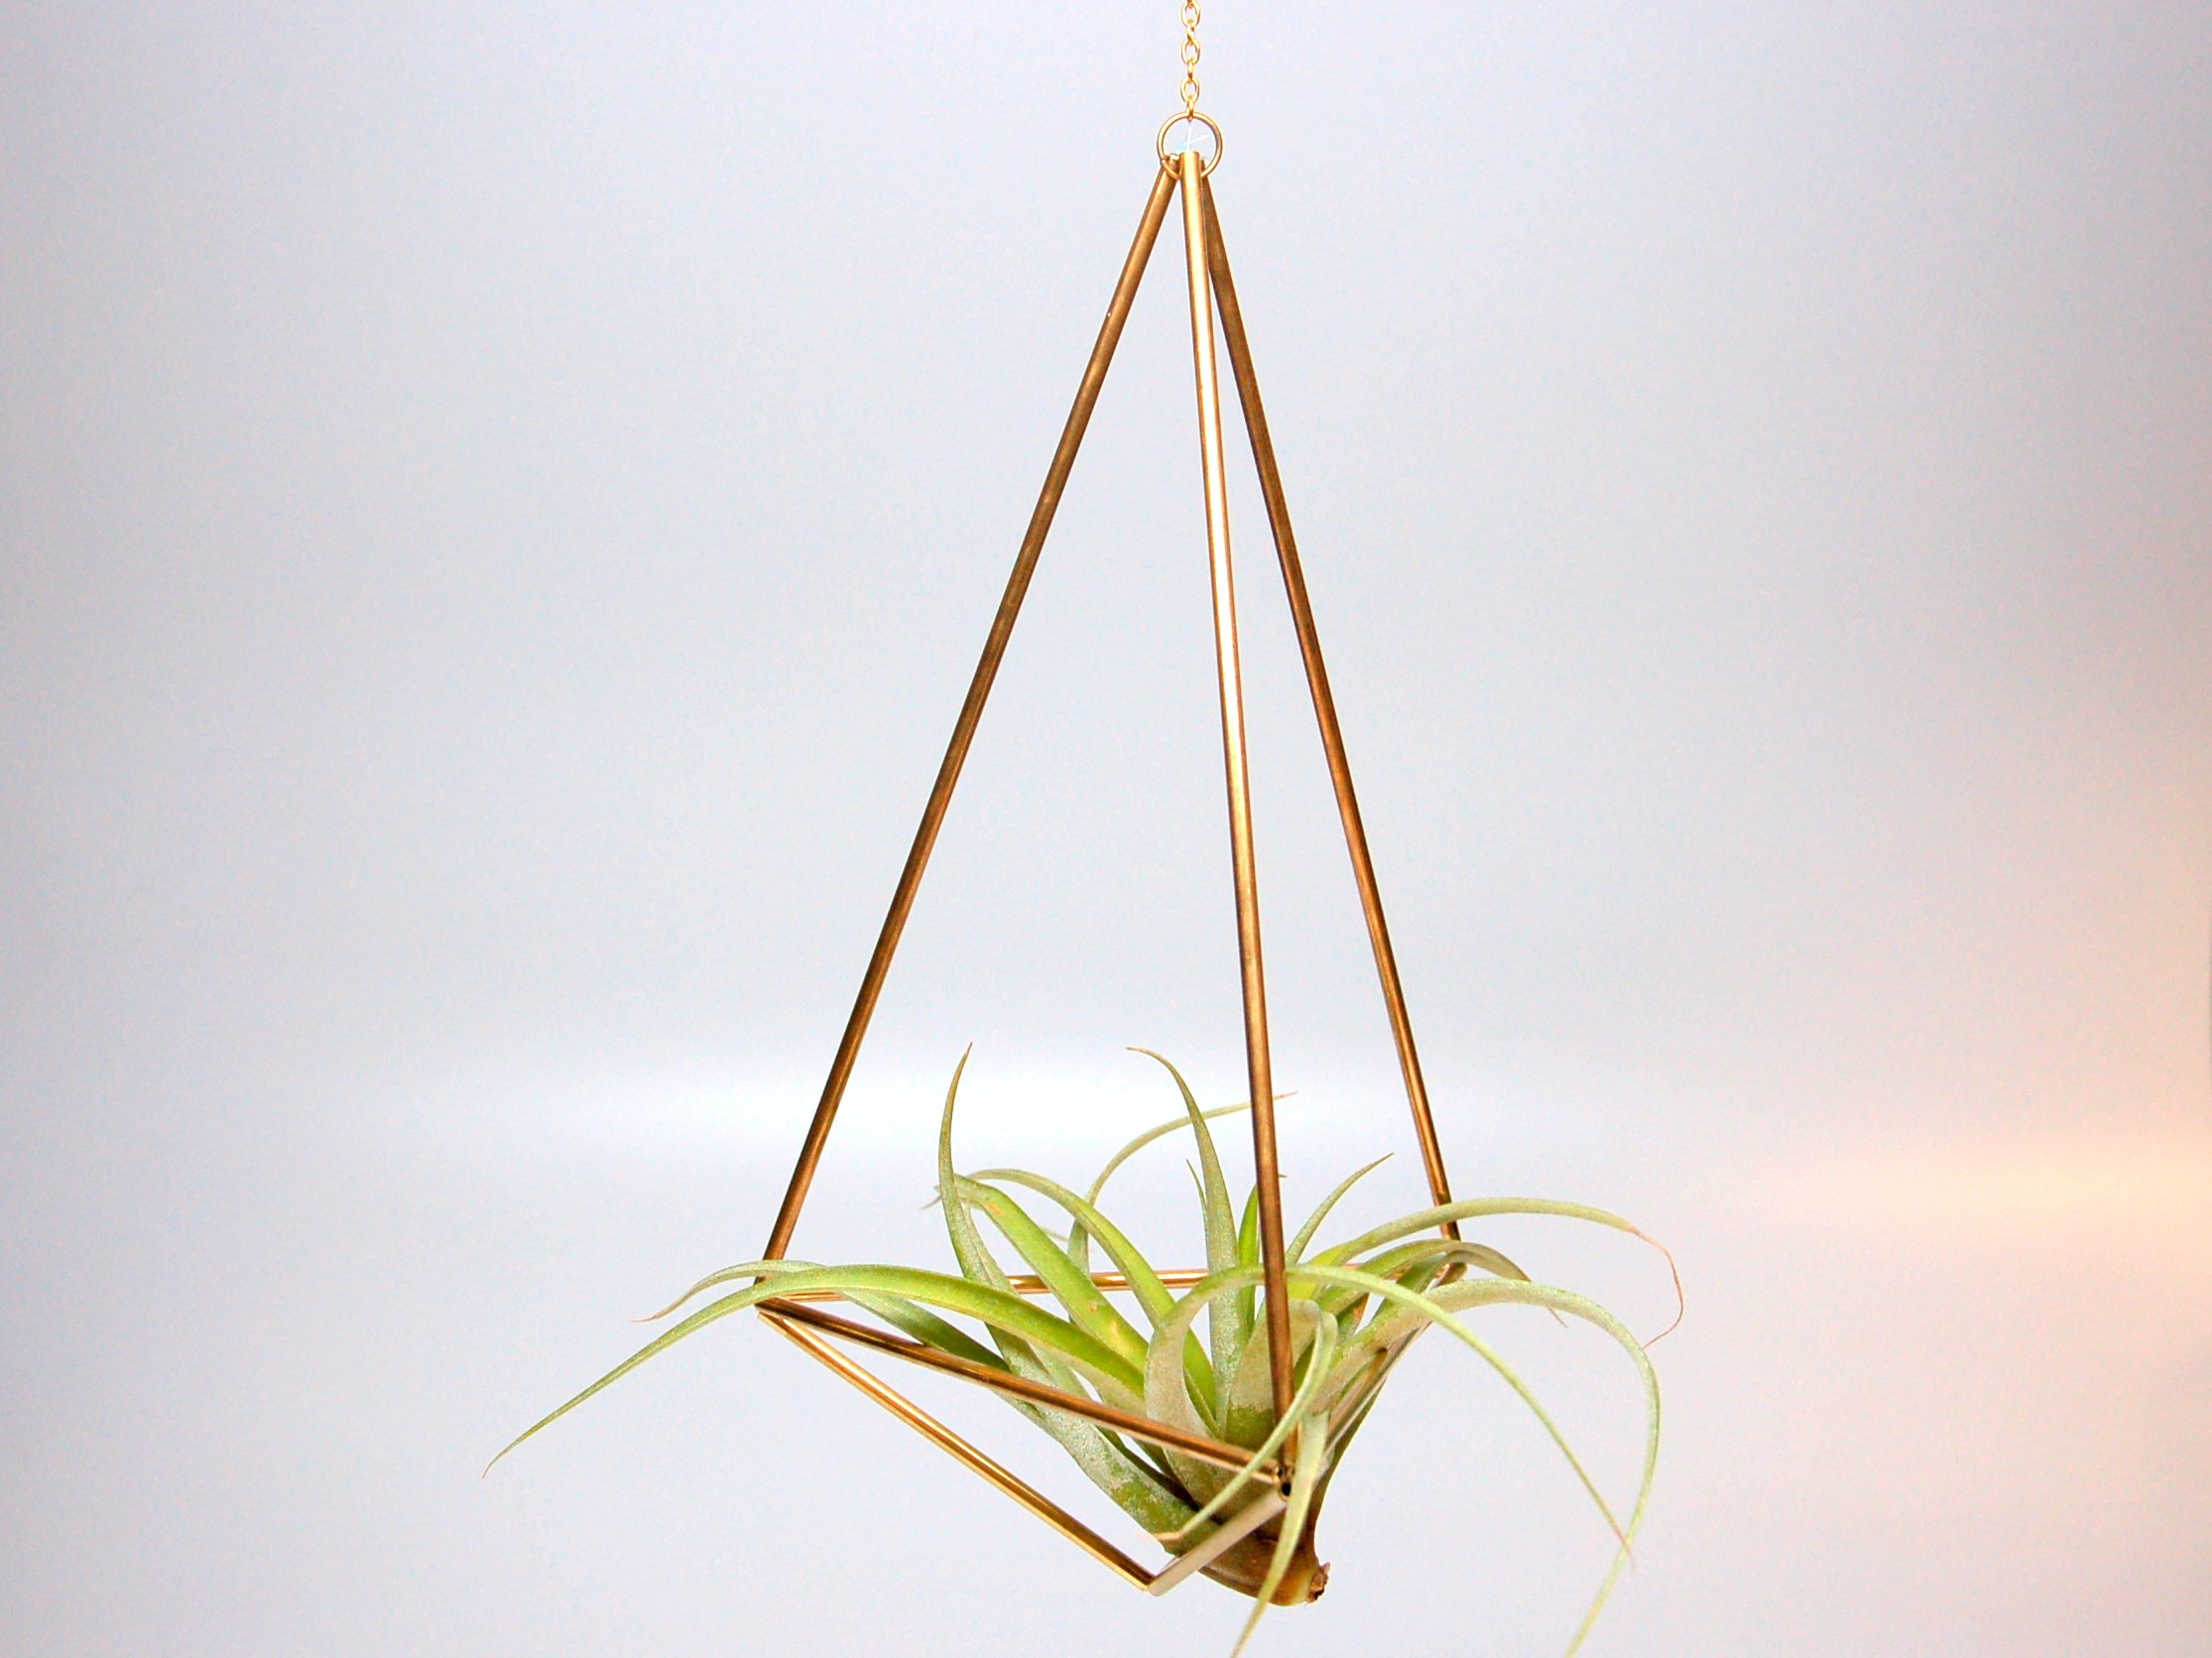 Design 22 - Large Hanging Brass Geometric Ornament (Himmeli) - Air Plant, Terrarium, Hanging Planter